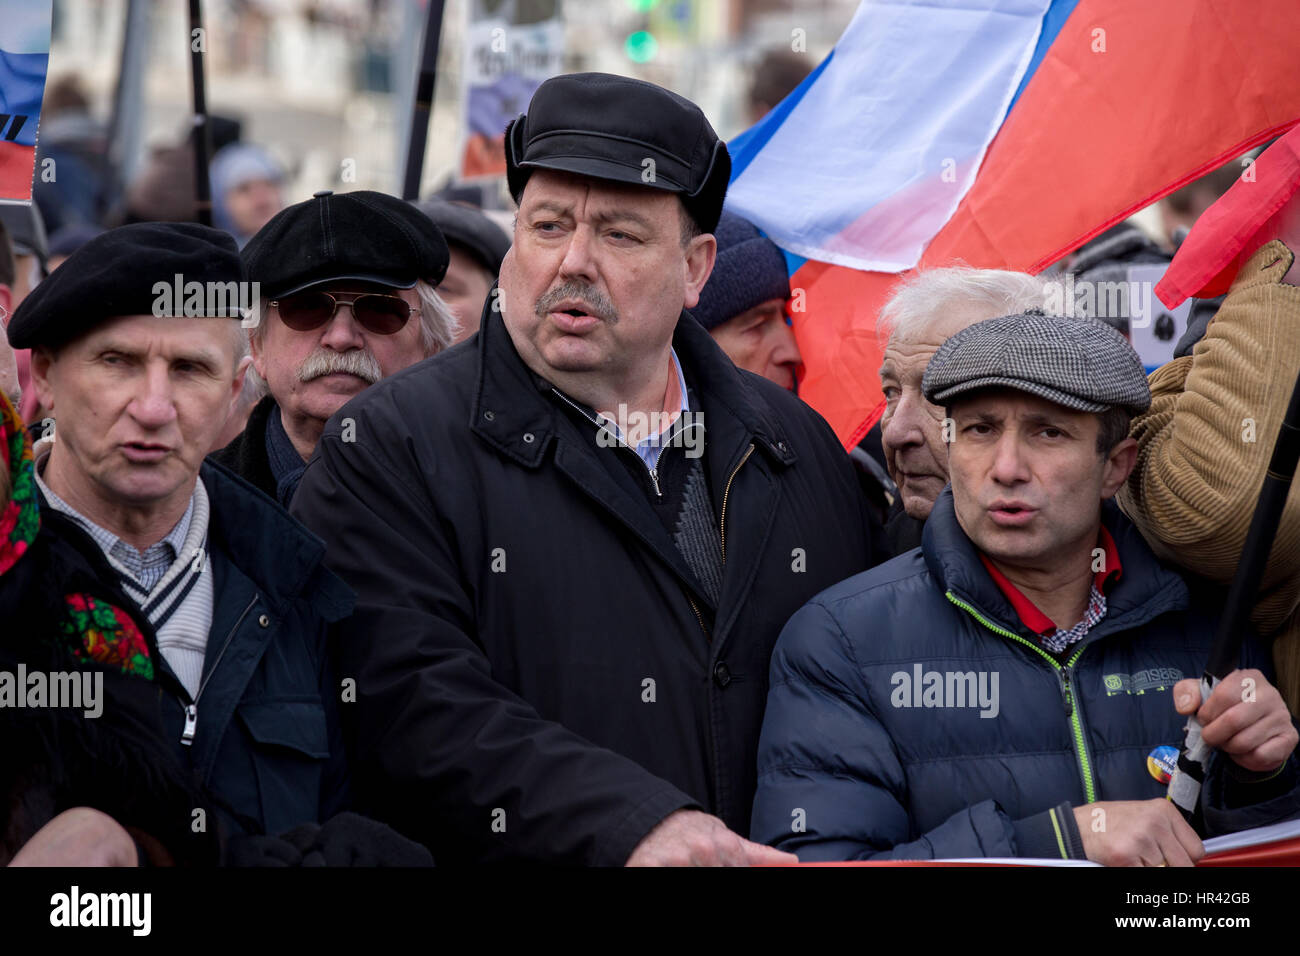 Moscow, Russia. 26th February 2017. Russian politician and businessman Gennady Gudkov (2nd R) takes part in a march - Stock Image